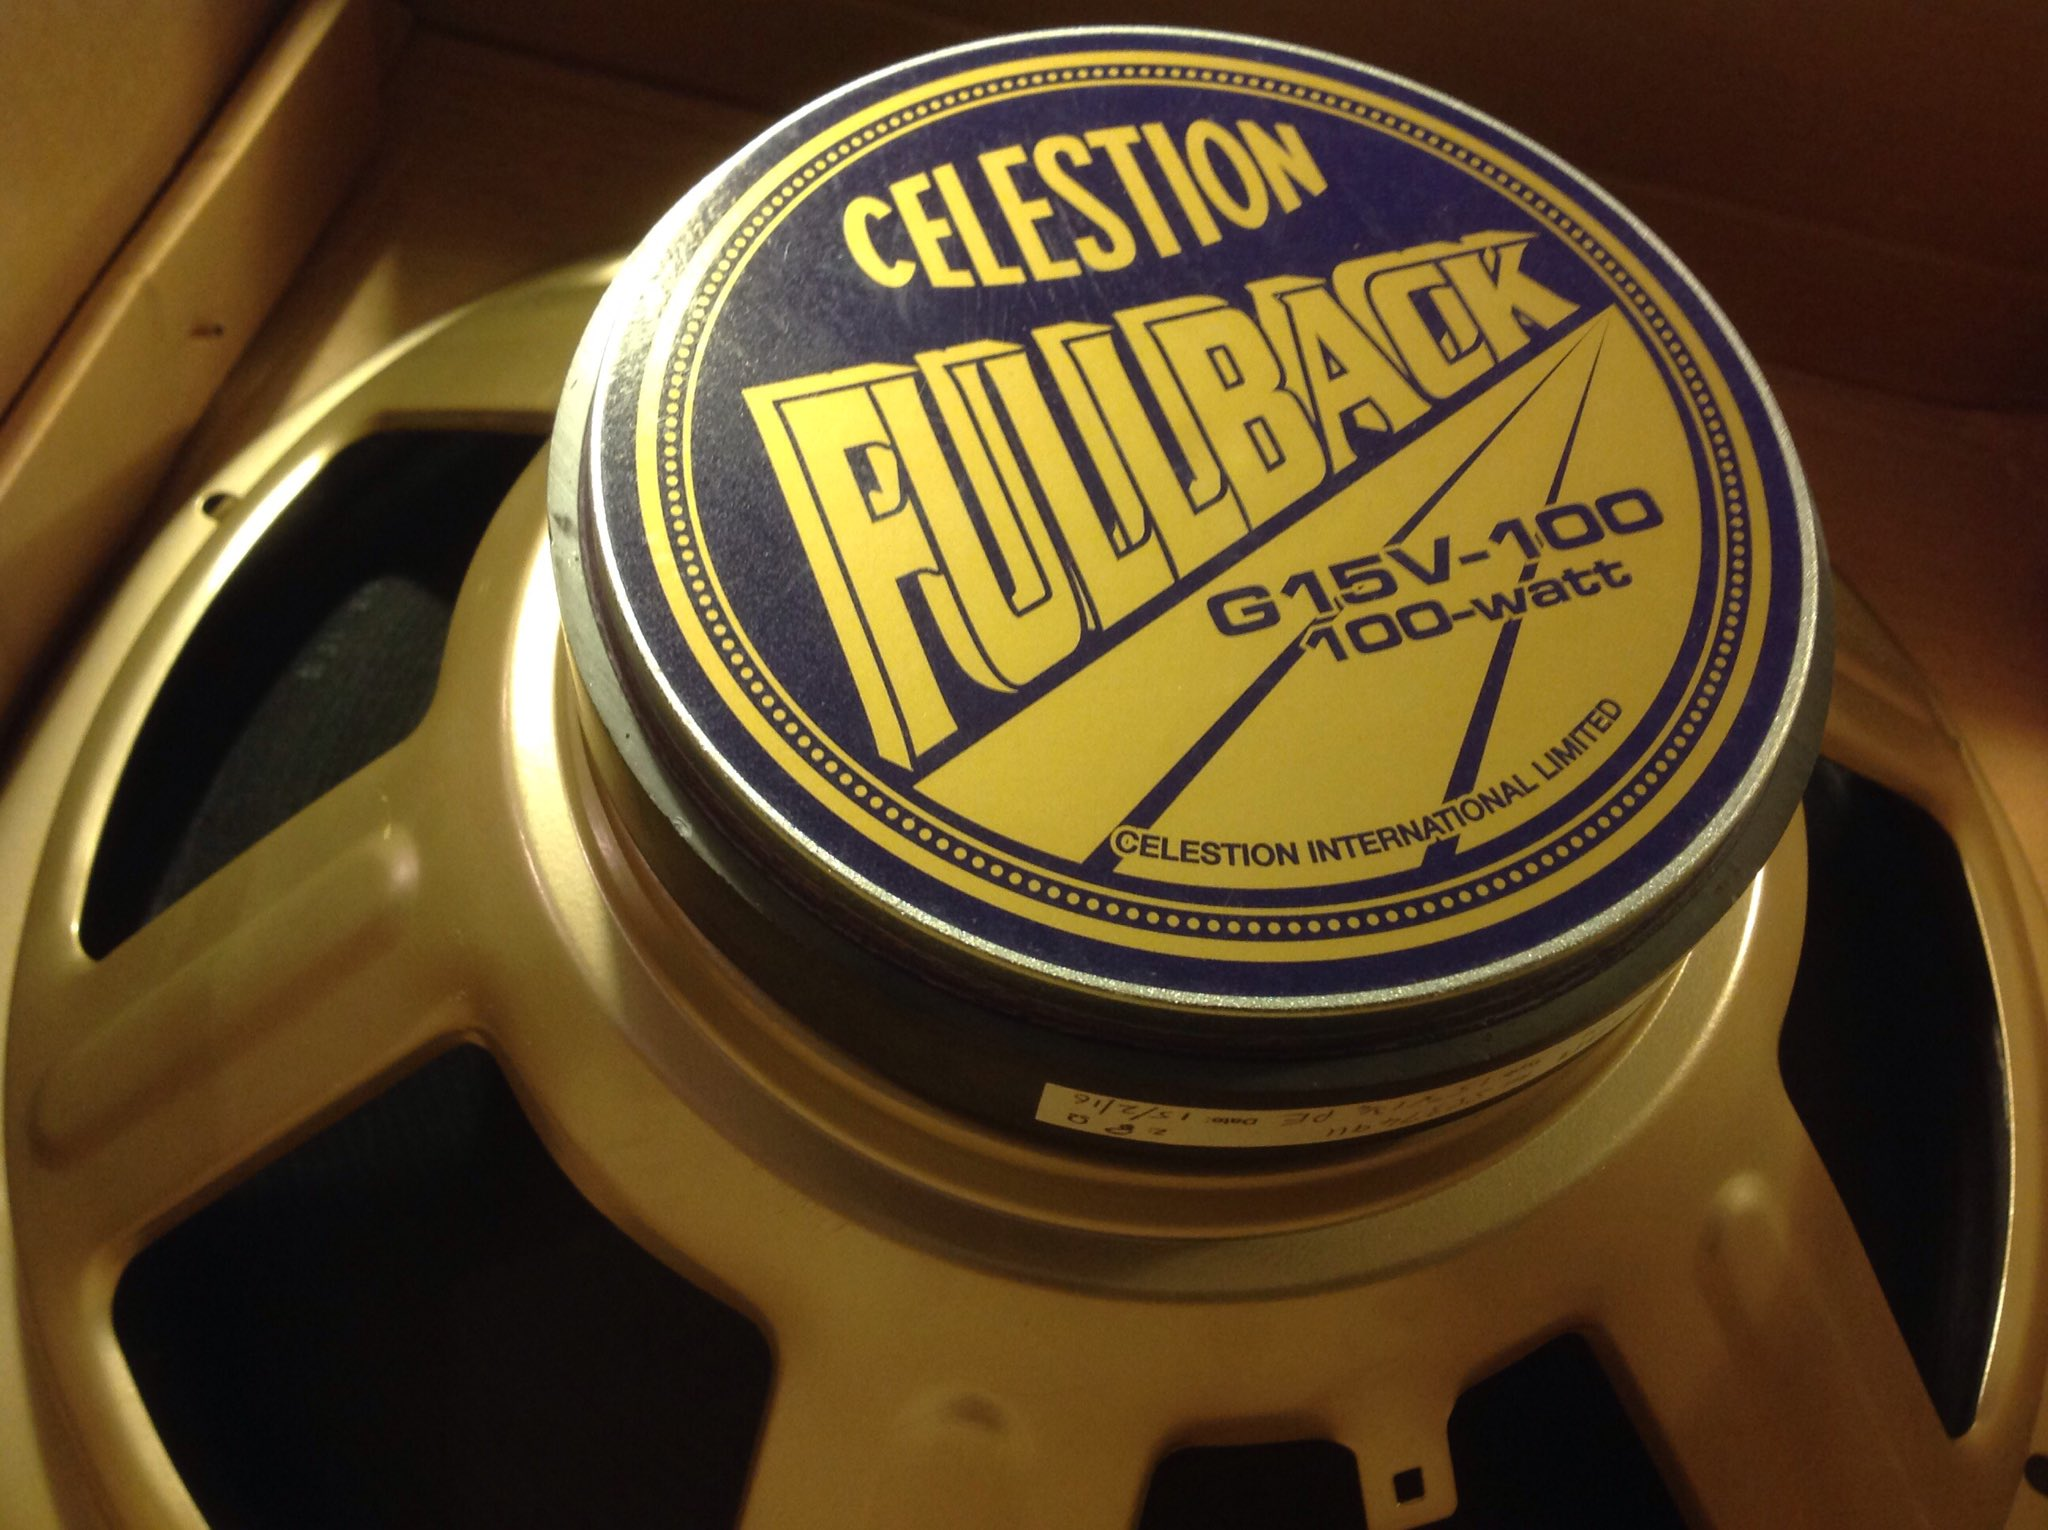 celestion gv fullback the micro terror side by side the 4x12 or 2x12 the jcm 2000 it will also make a cool extension speaker for my fender quad reverb